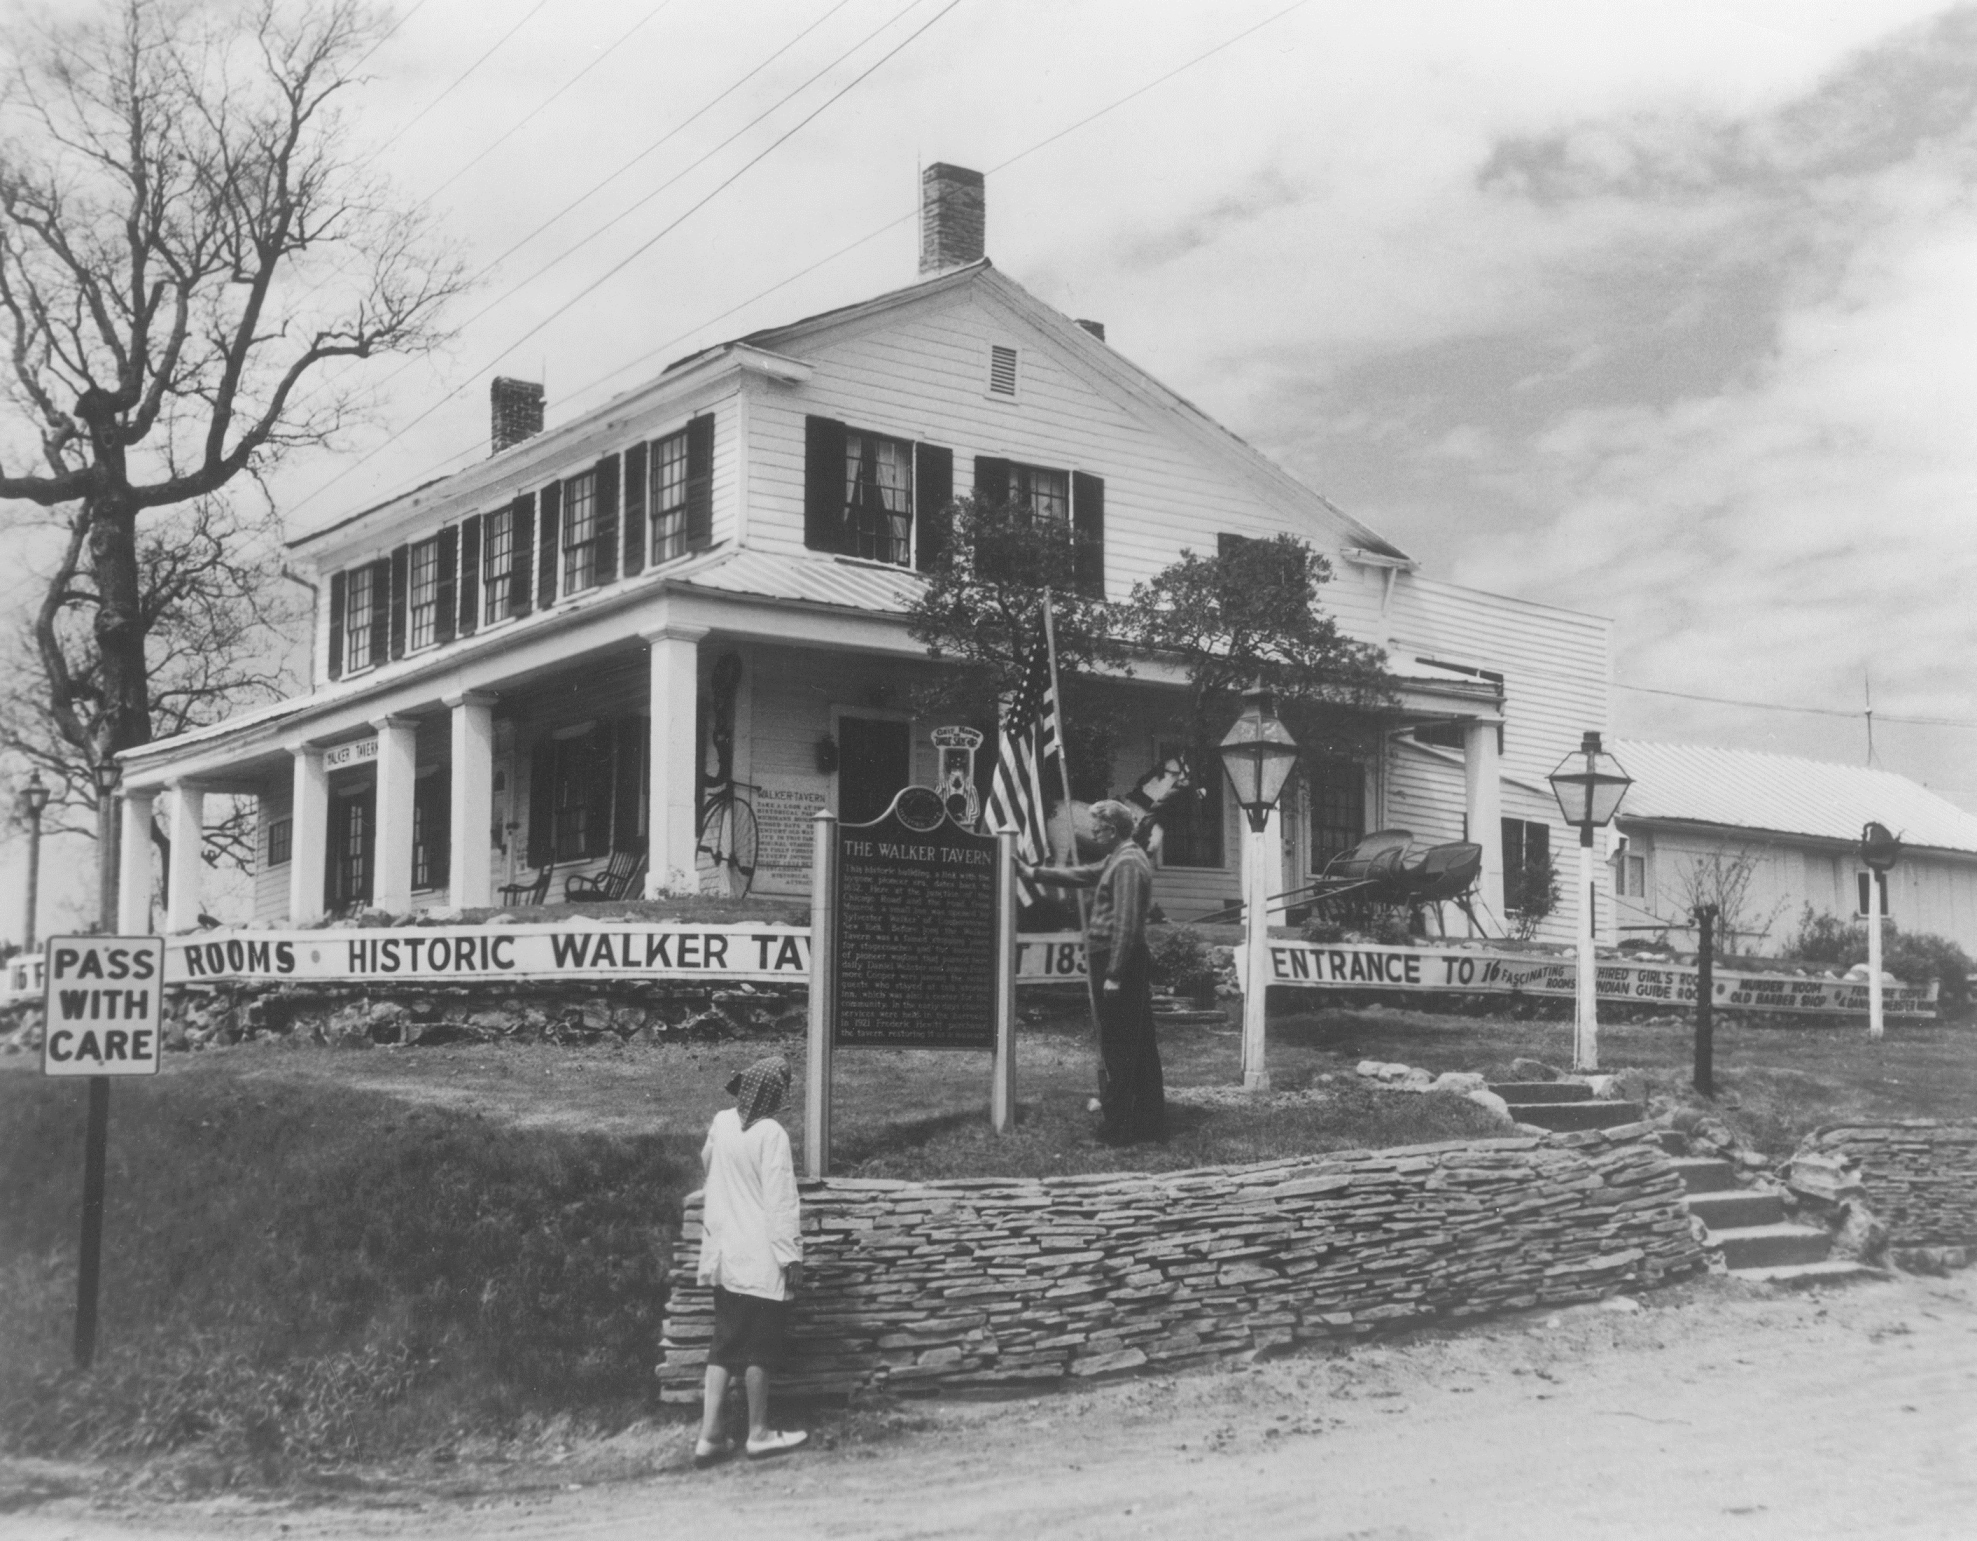 Jeanne Hewitt Keith and her husband, Forist in a 1960's photo of the tavern.